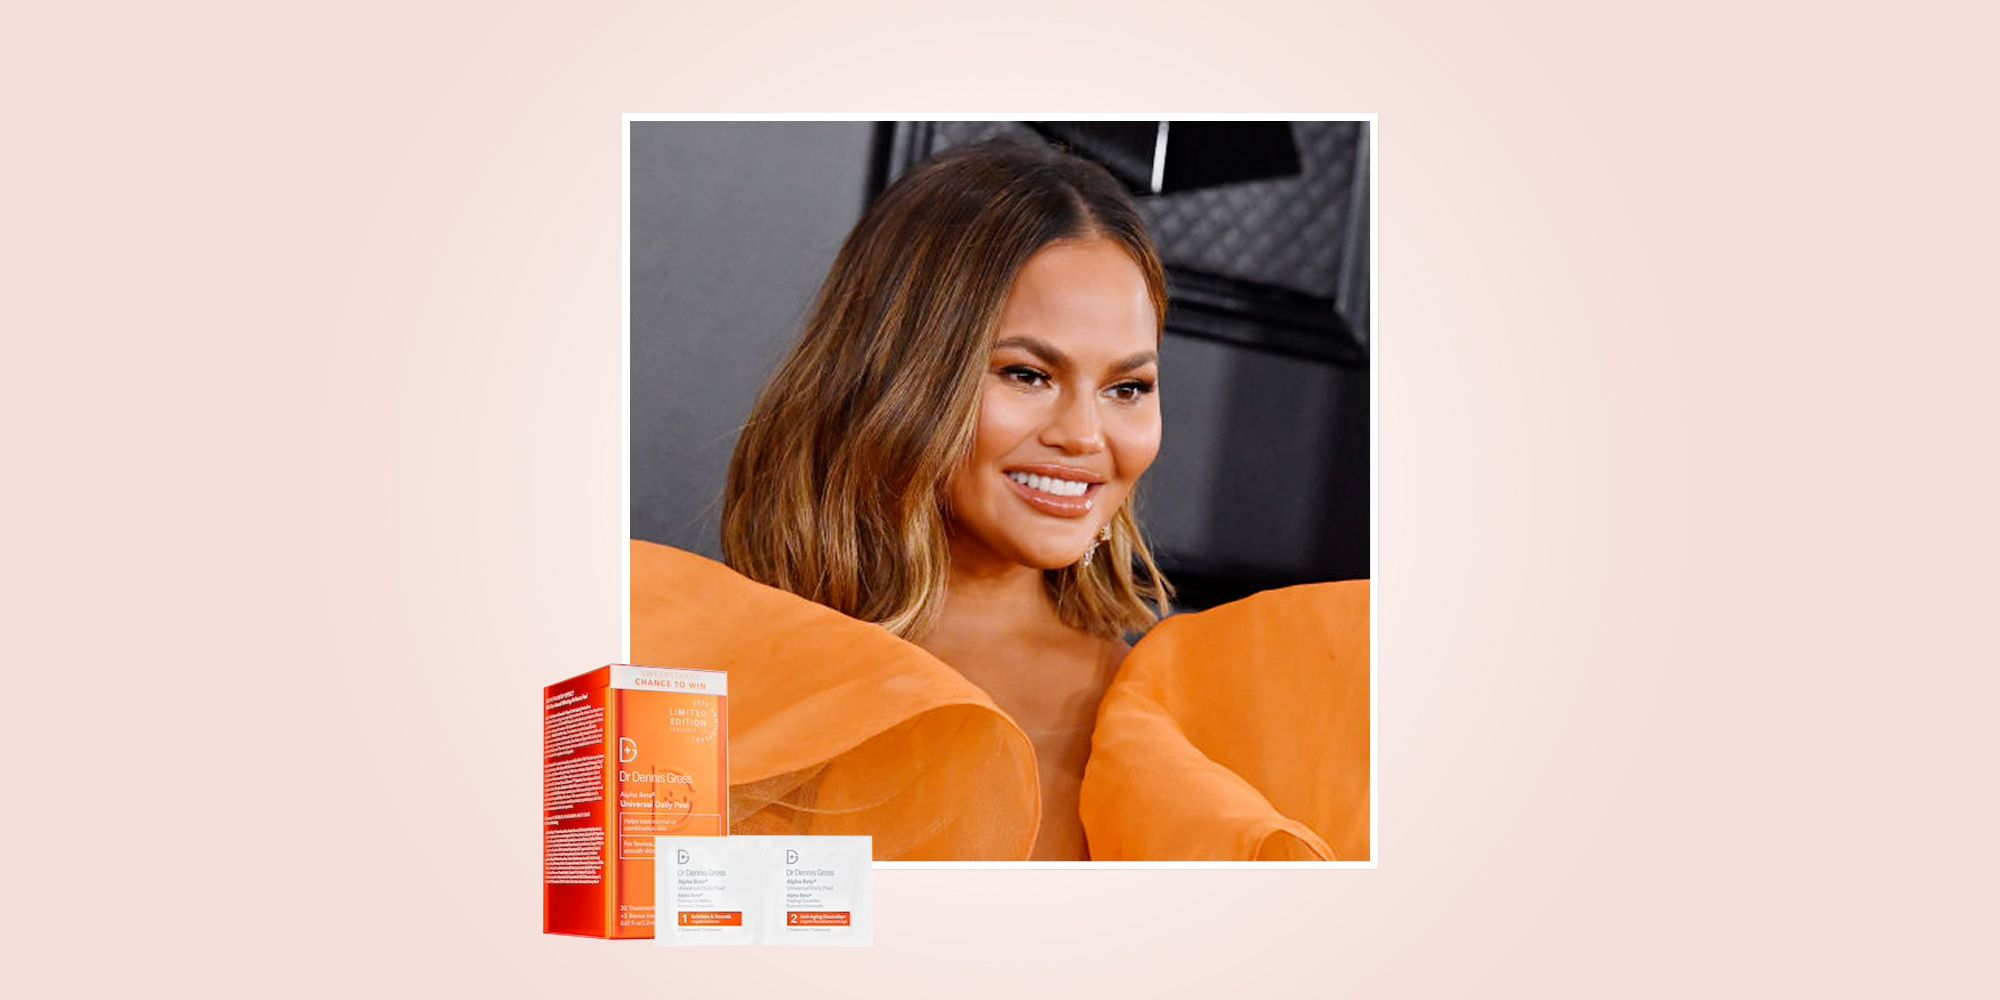 Chrissy Teigen's Favorite Dr. Dennis Gross Peels On Sale At Sephora